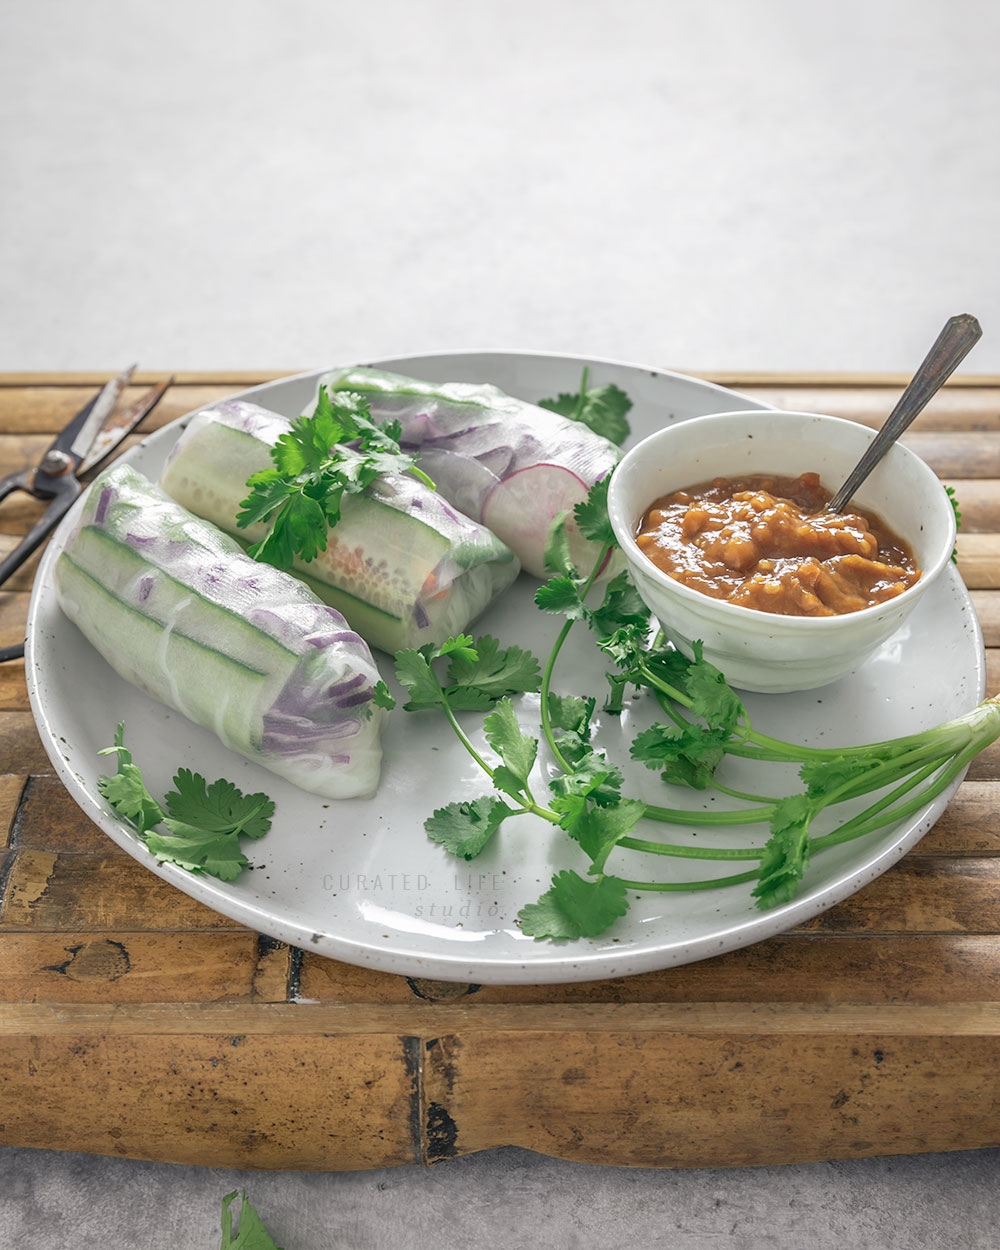 On a yellow bamboo tray sits some  Vietnamese Fresh Spring Rolls with Peanut Dipping Sauce, everything blanketed in sprigs of cilantro.   #Vietnamese #Healthy #Peanut #Dipping #Sauce #Vegetarian #Vegan #Gluten-free #Tofu #Recipe #Rice #Paper #Spring #Rolls #Fresh